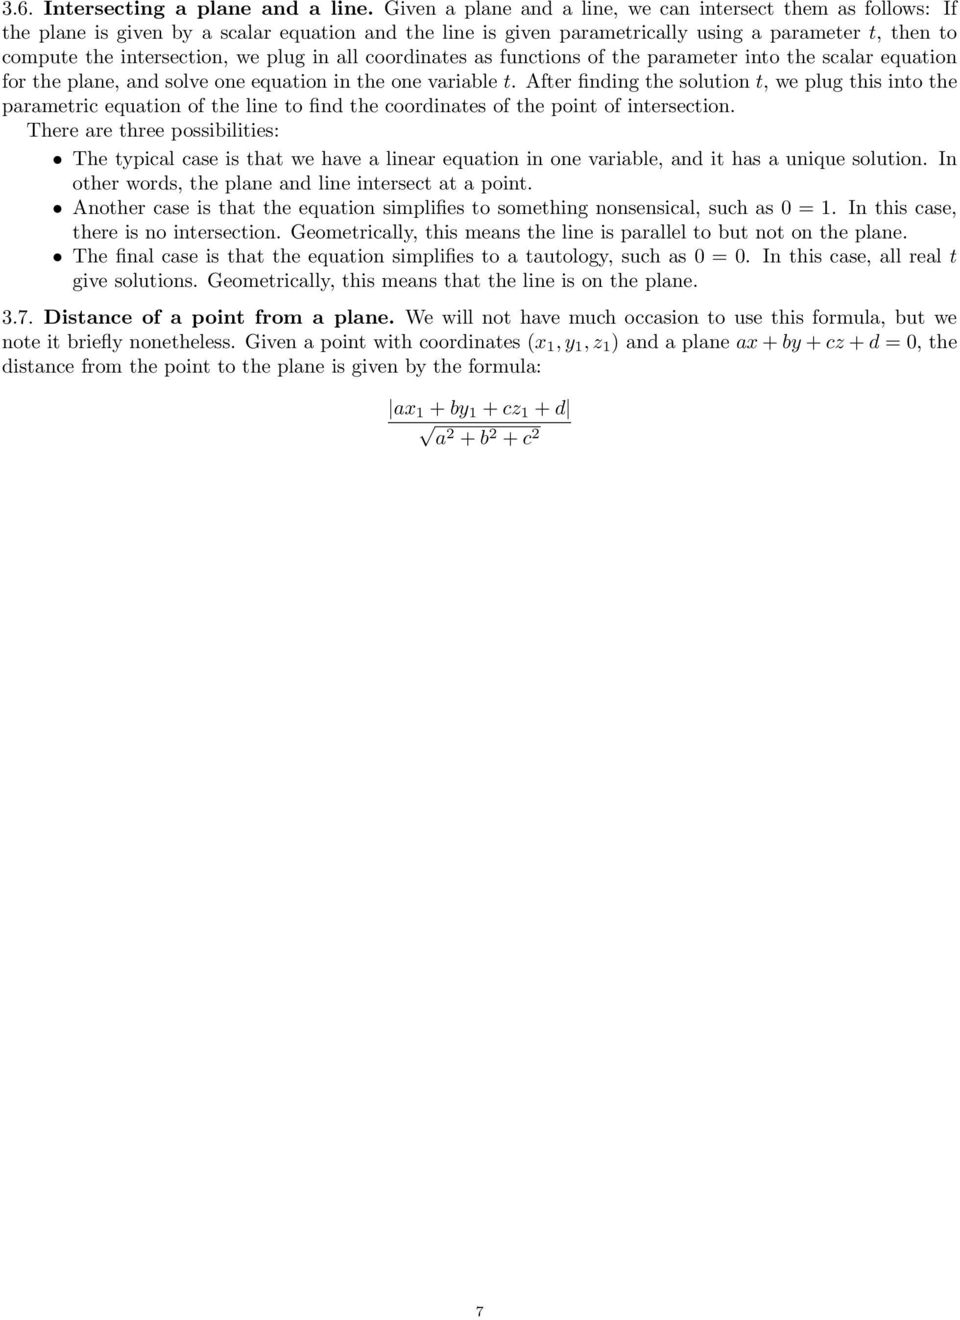 functions of the prmeter into the sclr eqution for the plne, nd solve one eqution in the one vrile t.